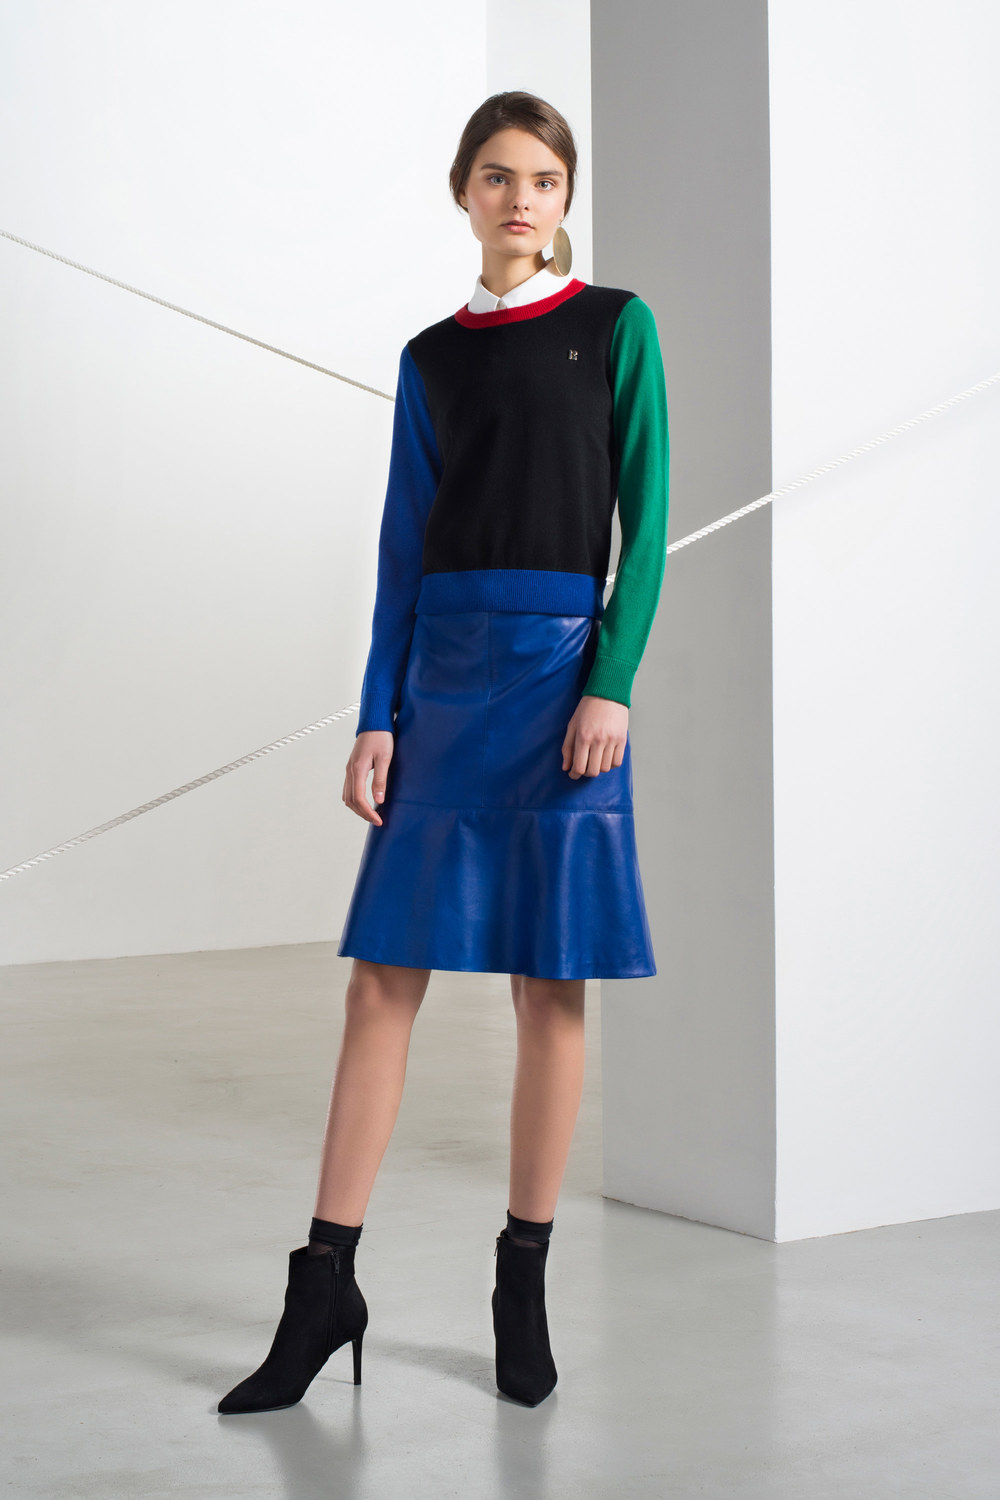 lisa-perry-pre-fall-2016-lookbook-09.jpg